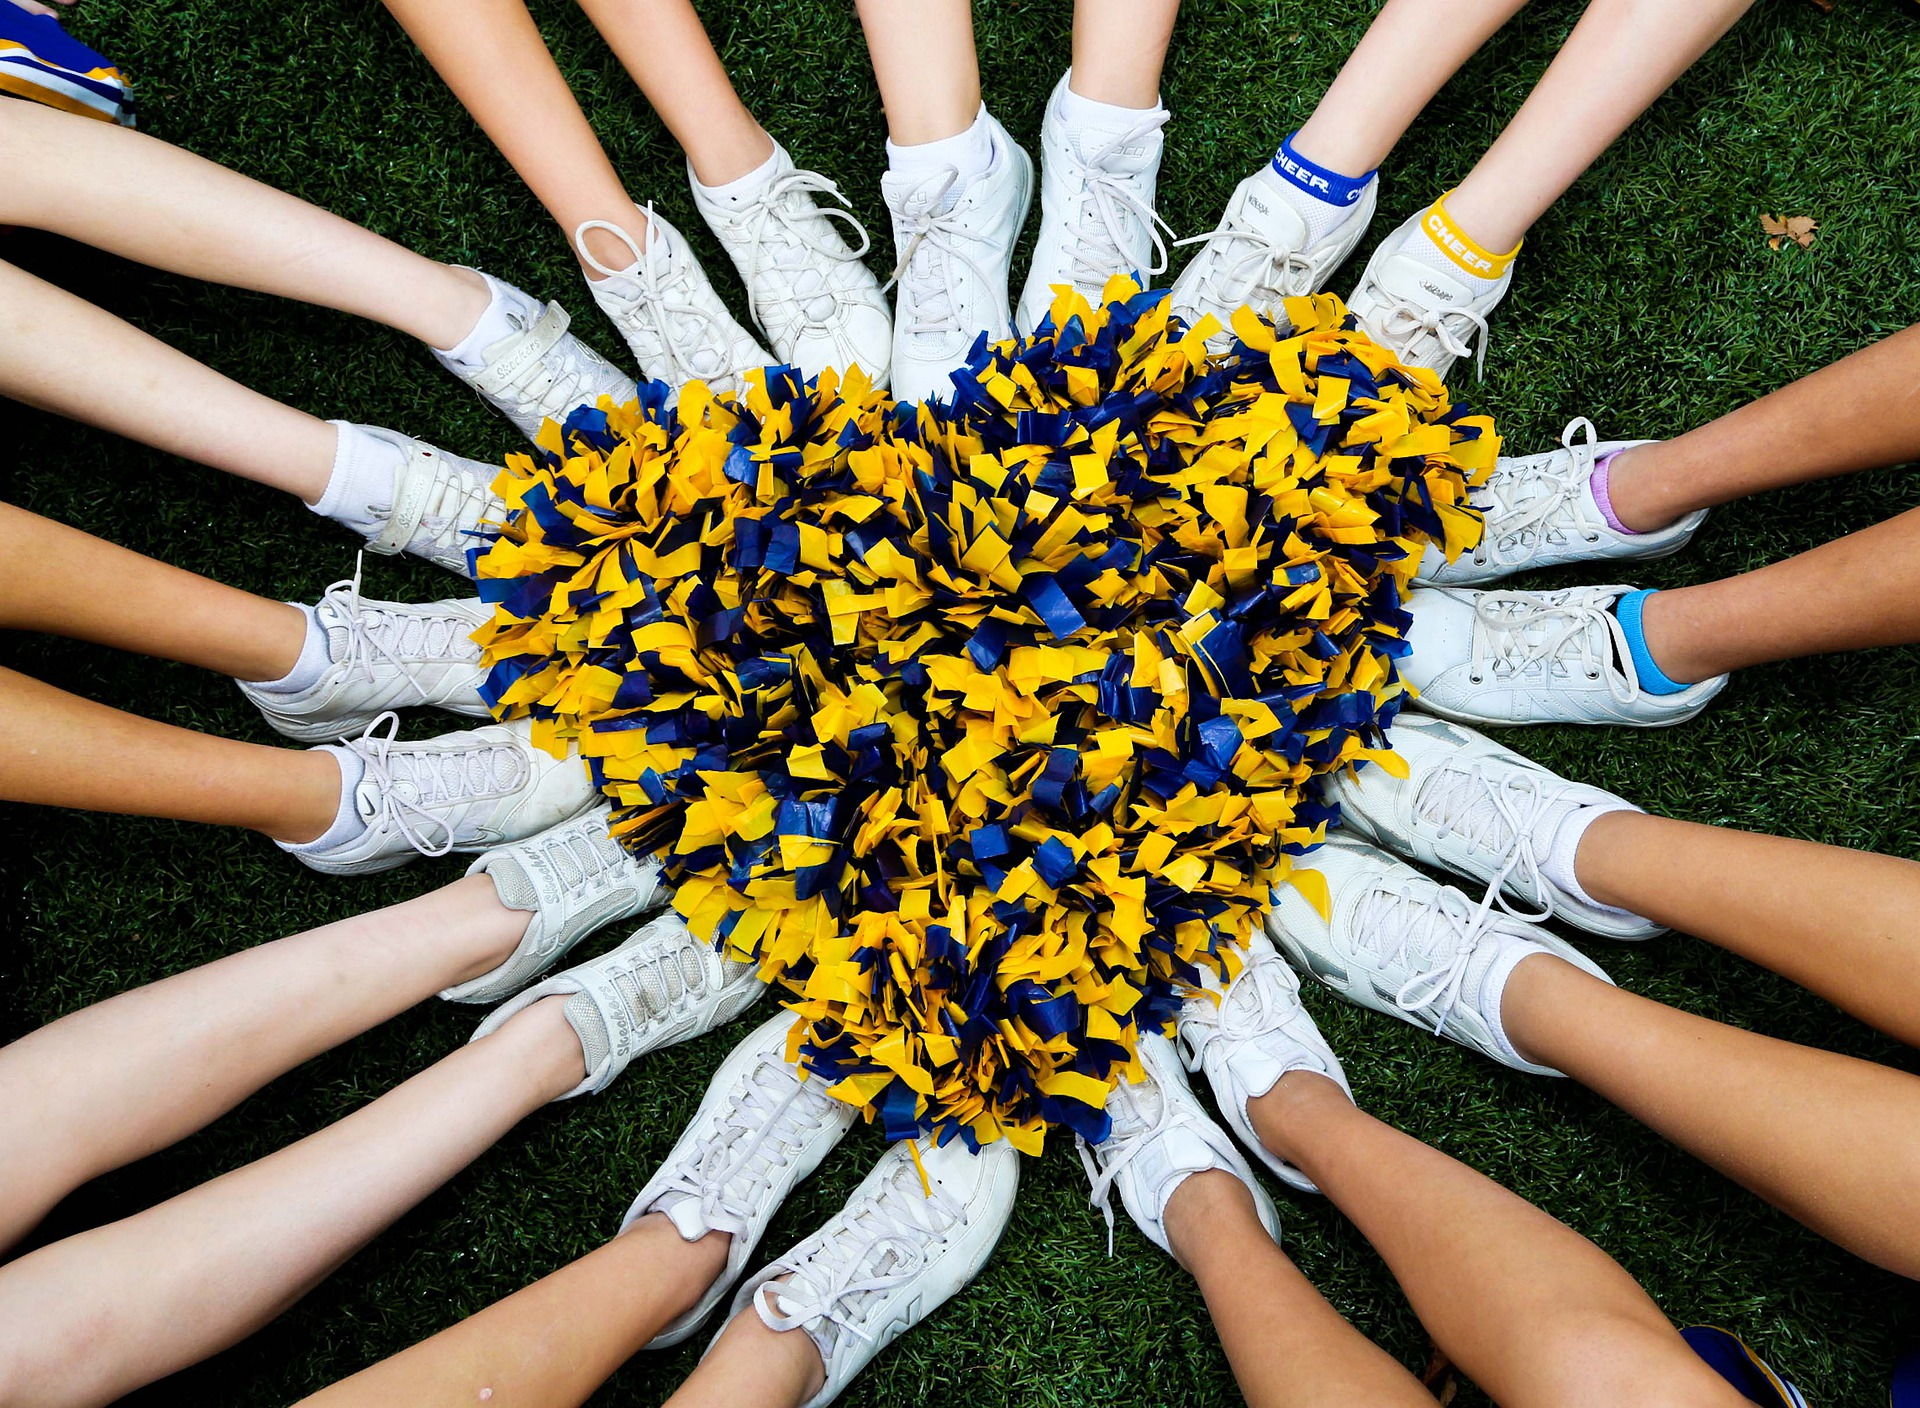 Former UCO cheer athletes aim for nationals as club